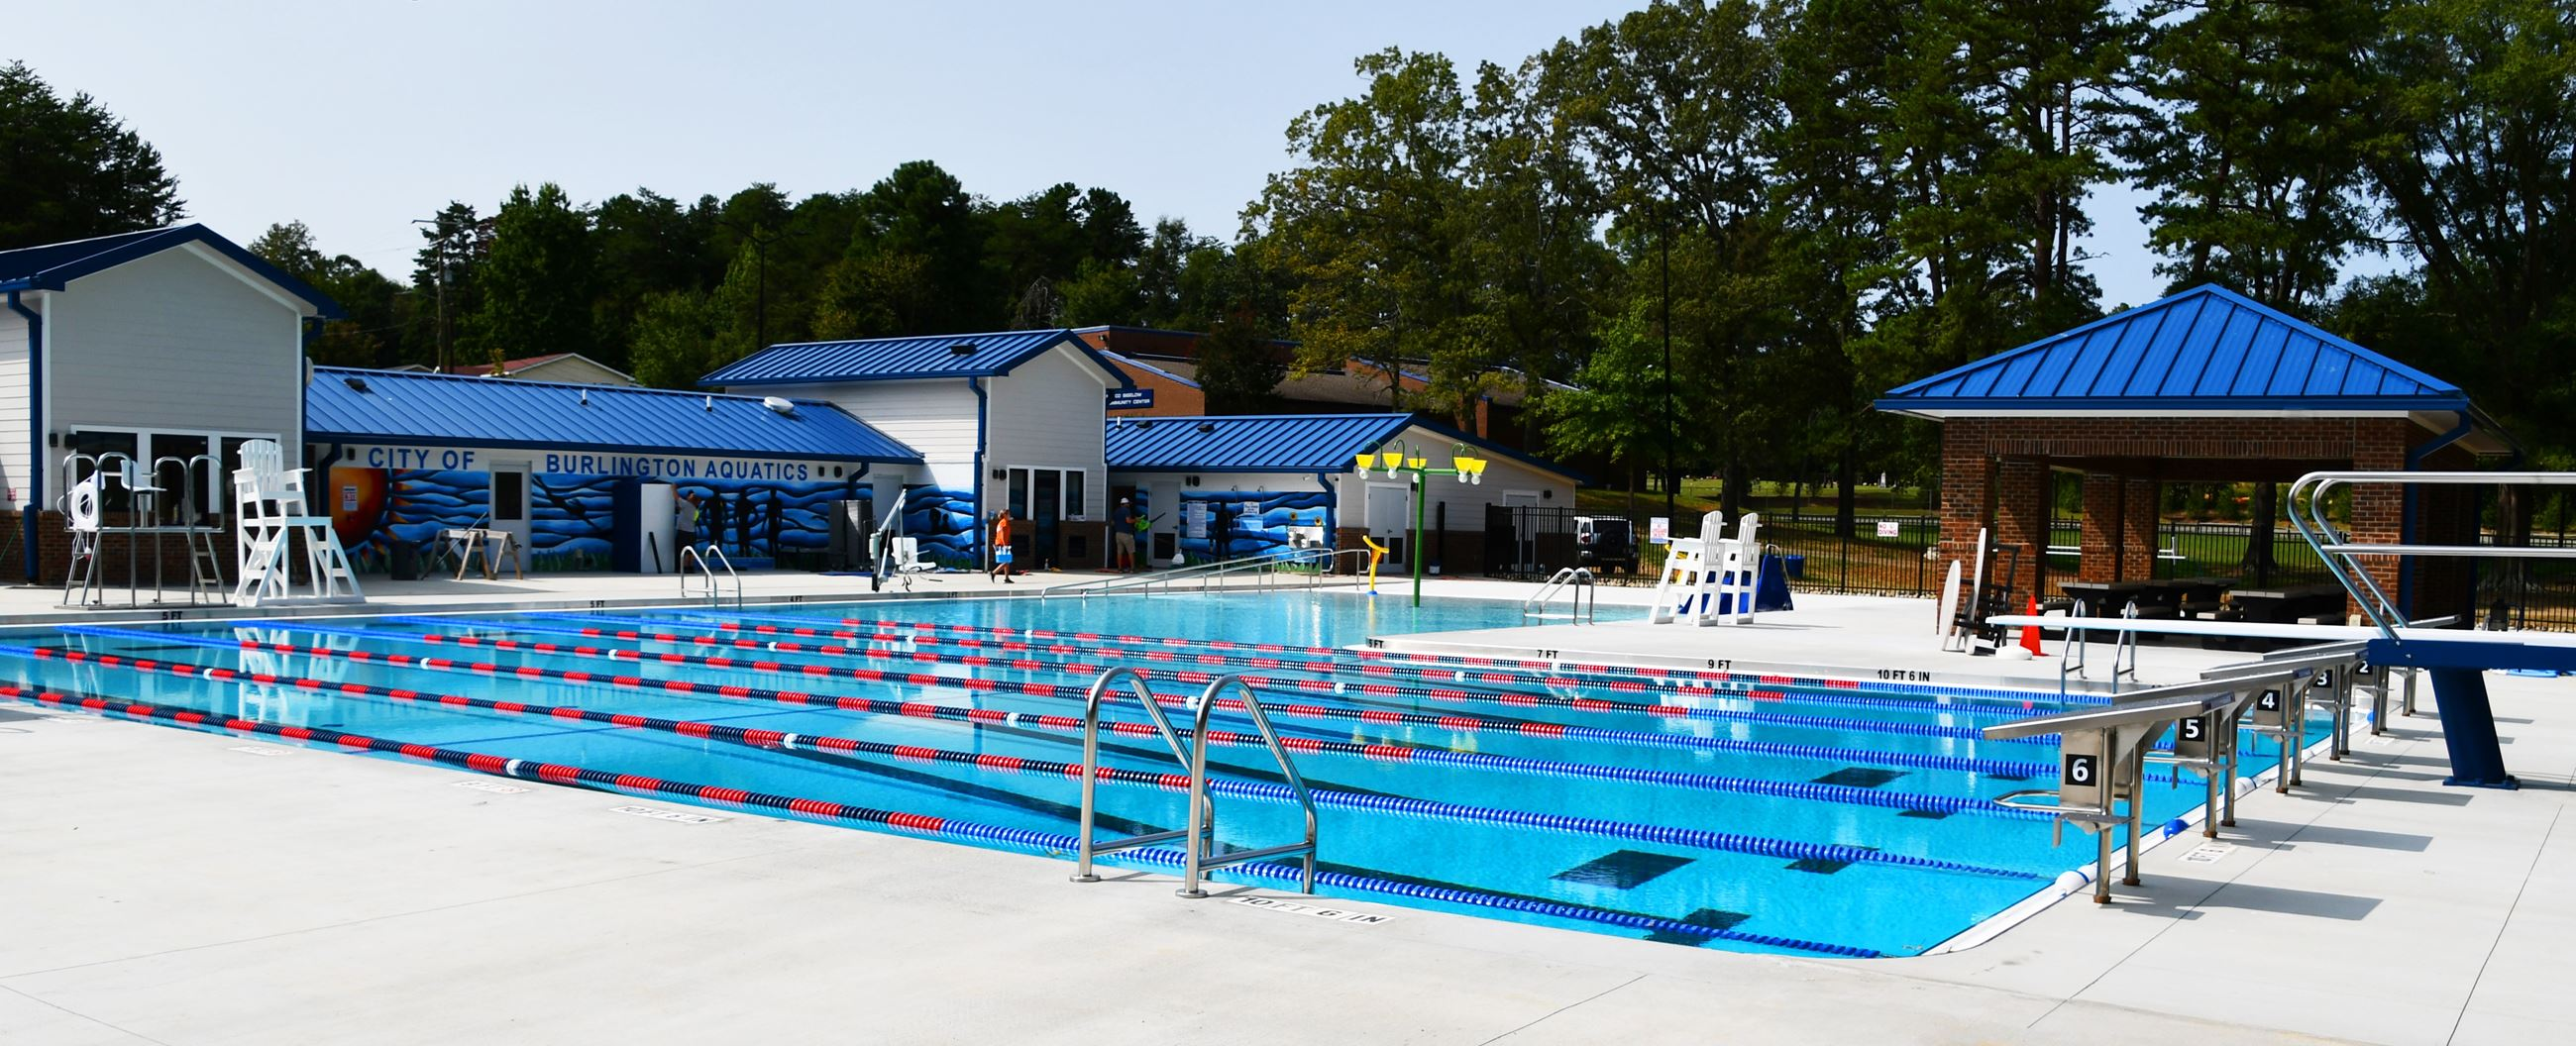 North Park Pool Deck